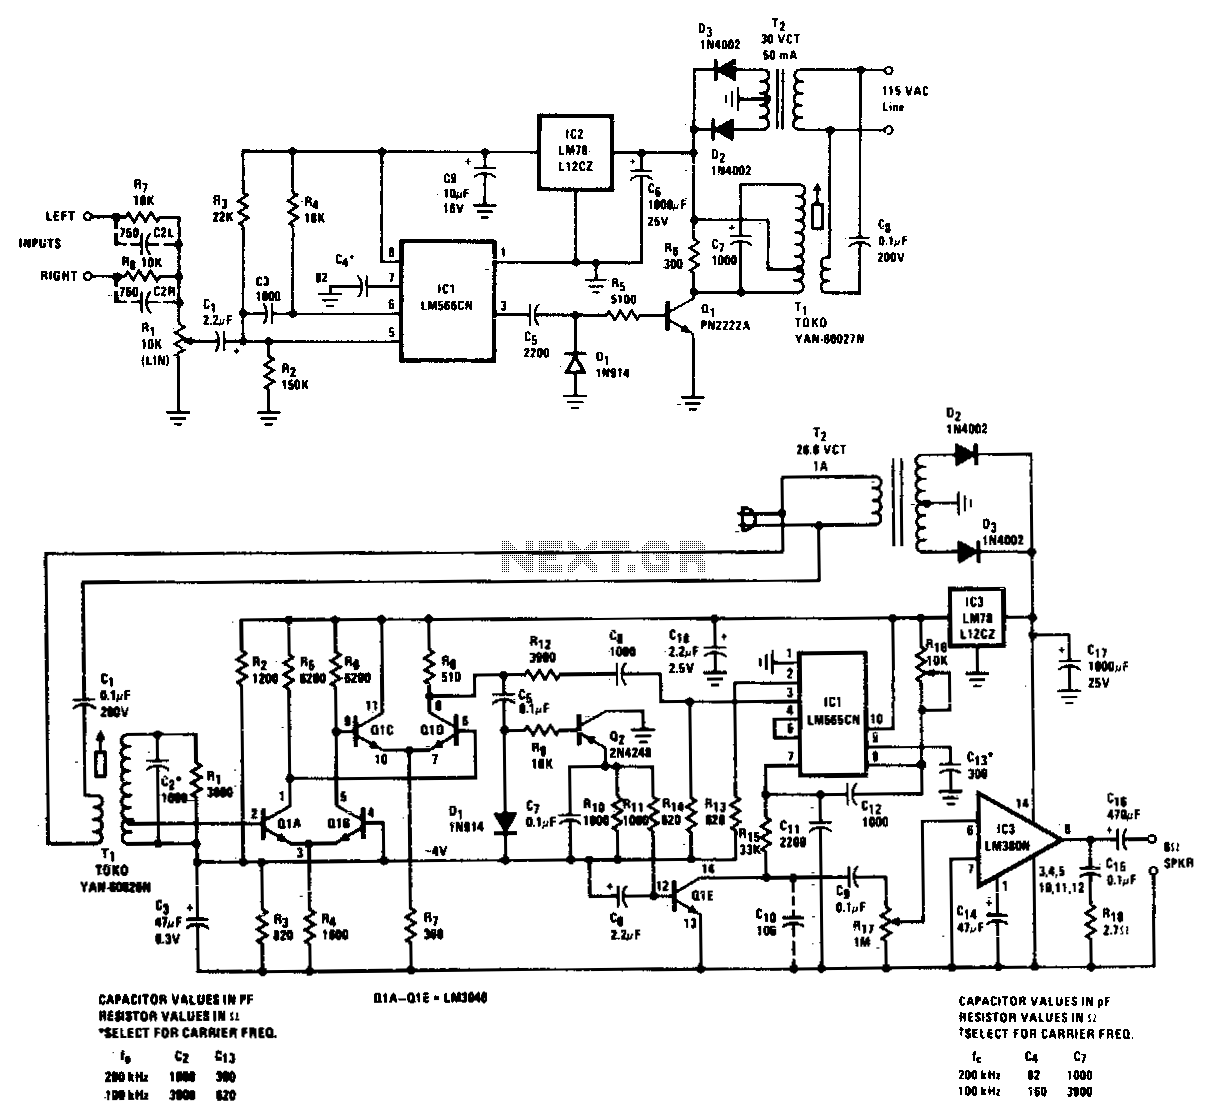 FM carrier current remote speaker system - schematic